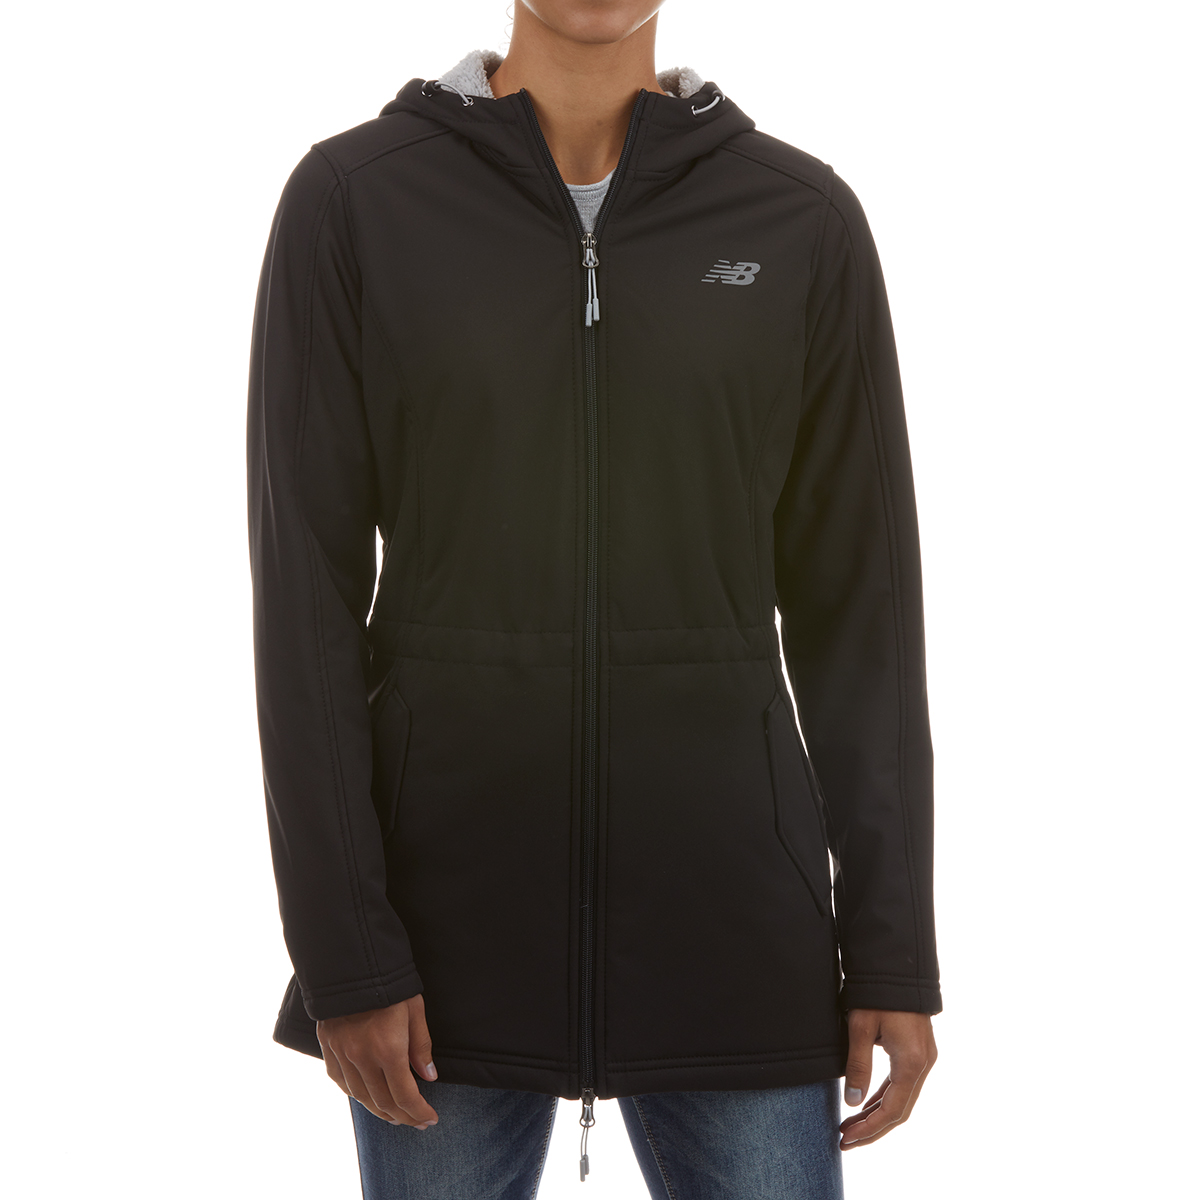 New Balance Women's Hooded Soft Shell Anorak Jacket With Sherpa Lining - Black, M